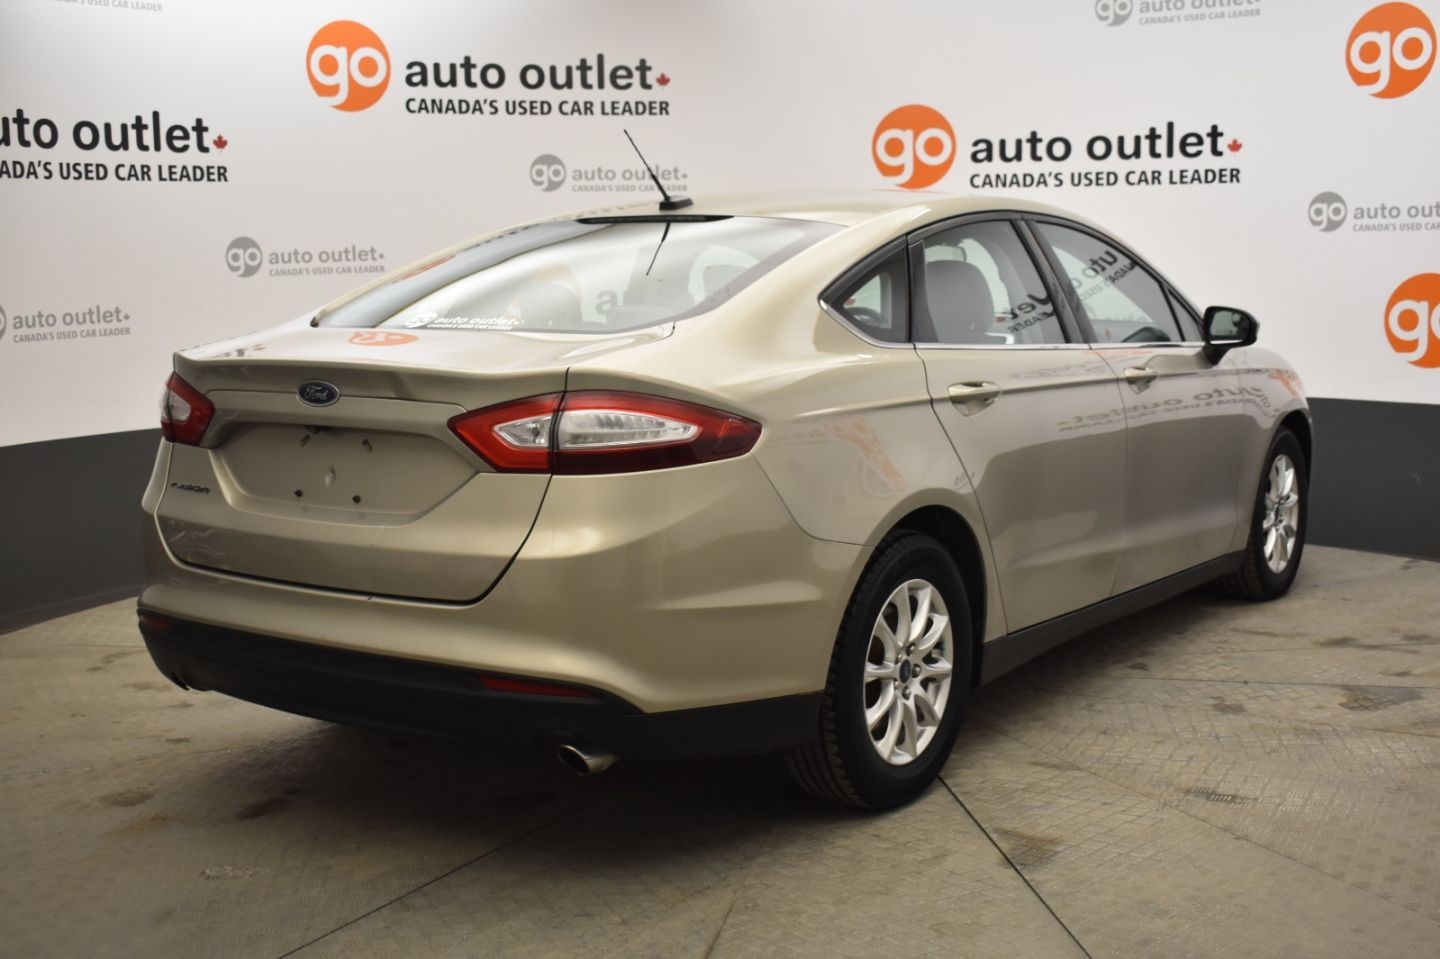 2015 Ford Fusion S for sale in Leduc, Alberta